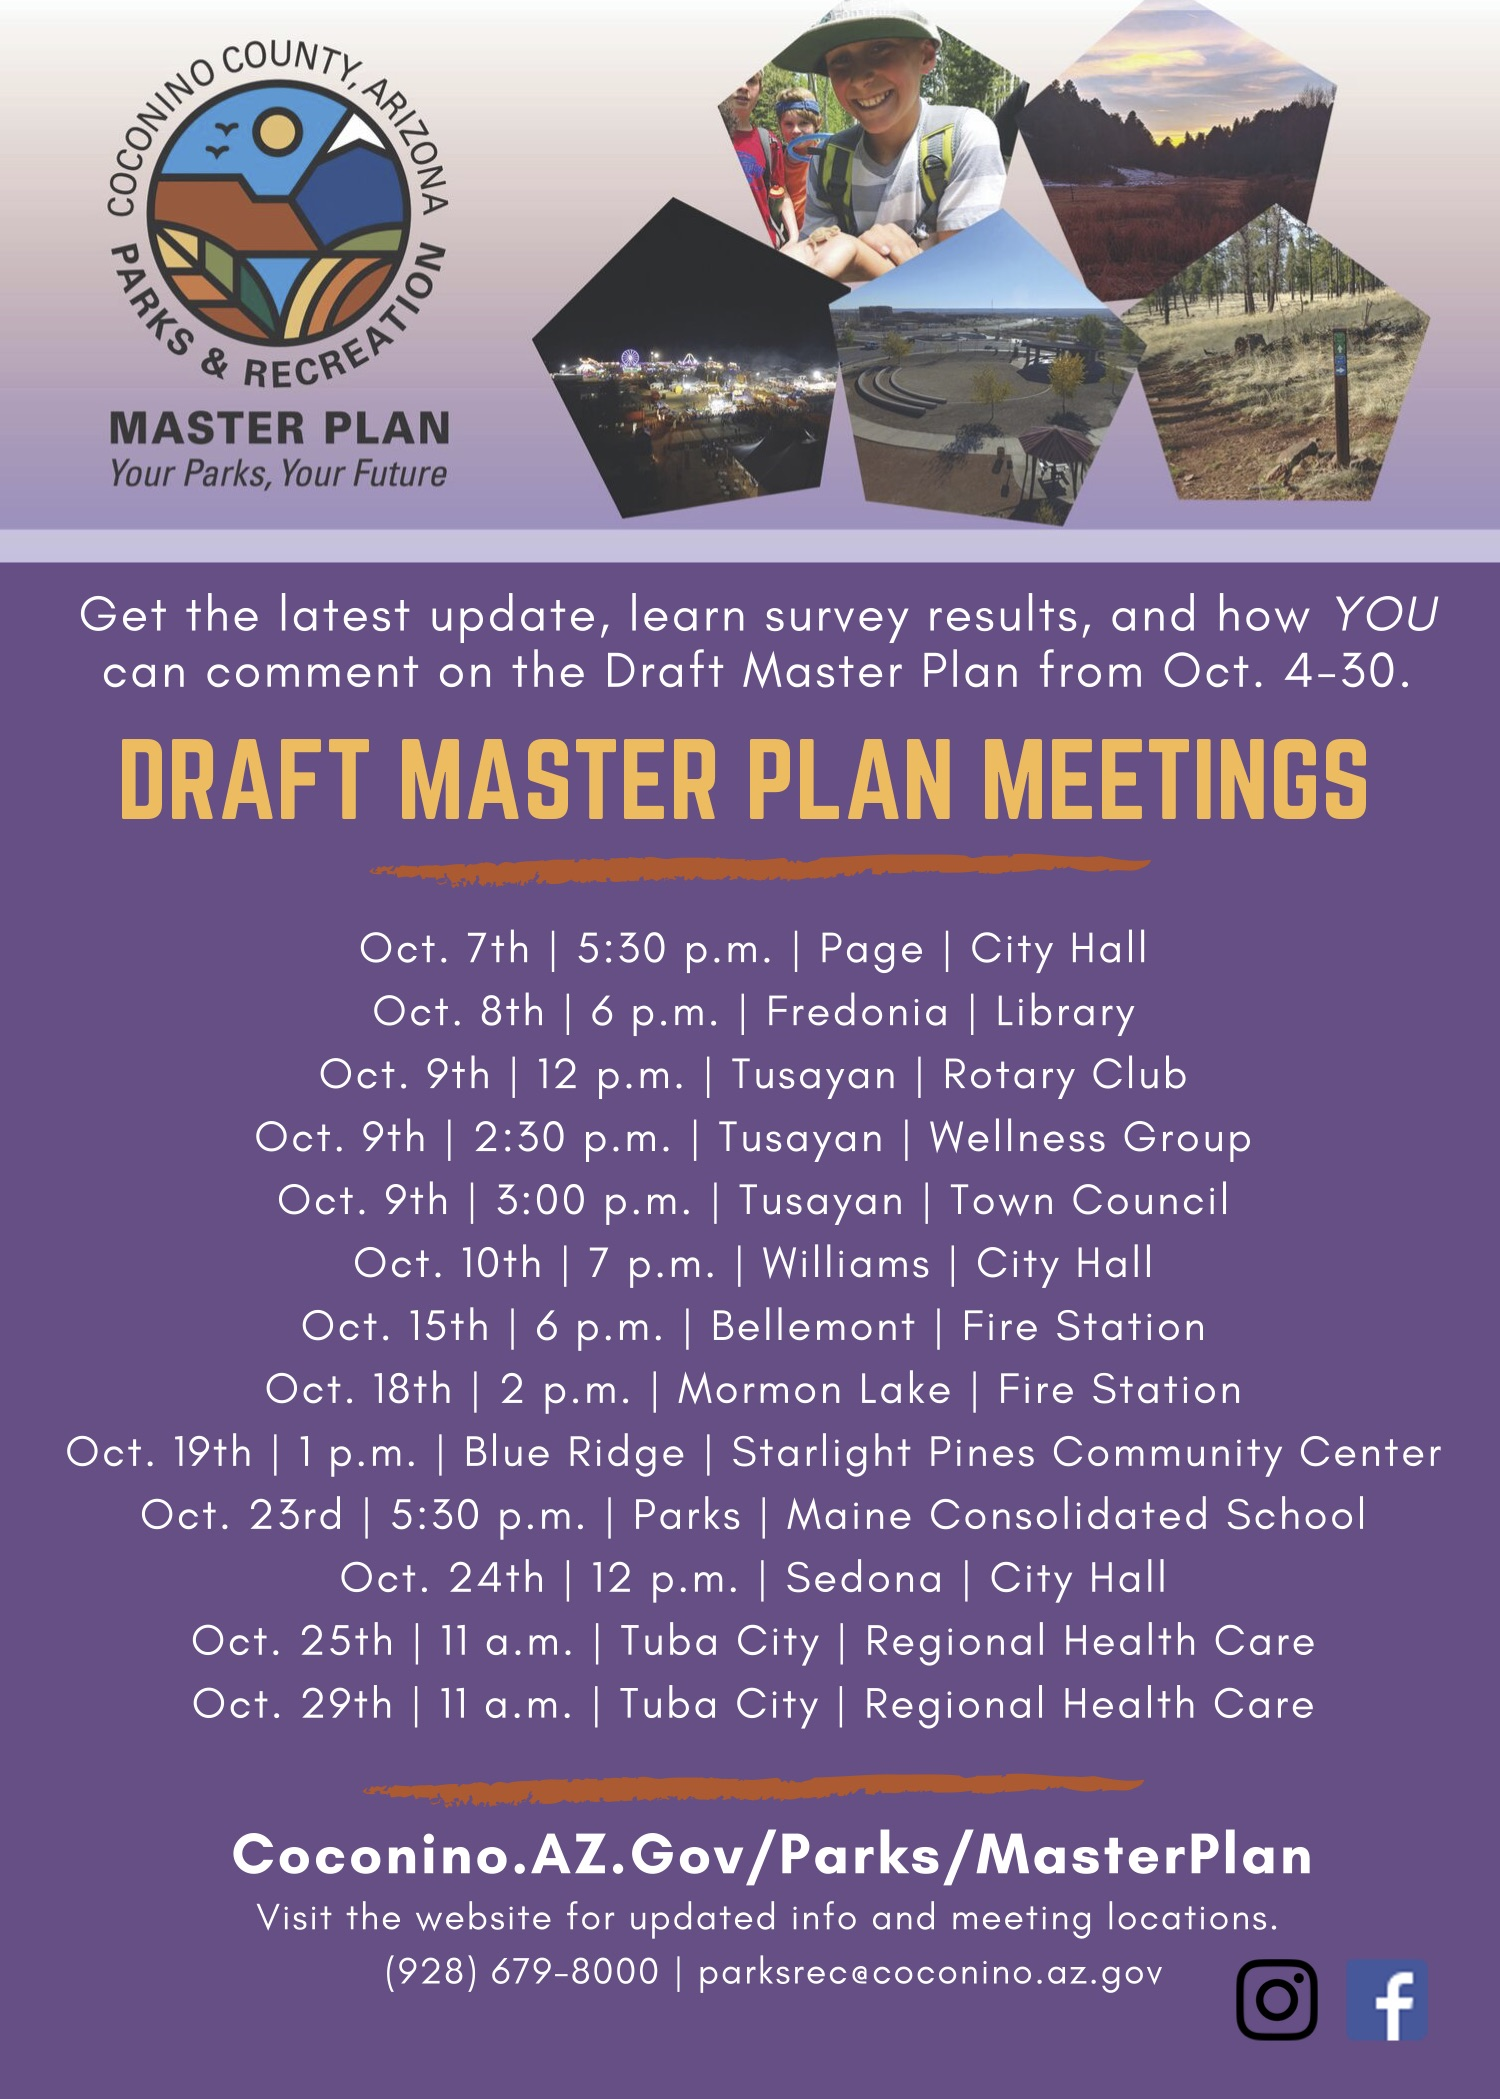 Master Plan Draft Plan meetings flyer_Coconino Cnty